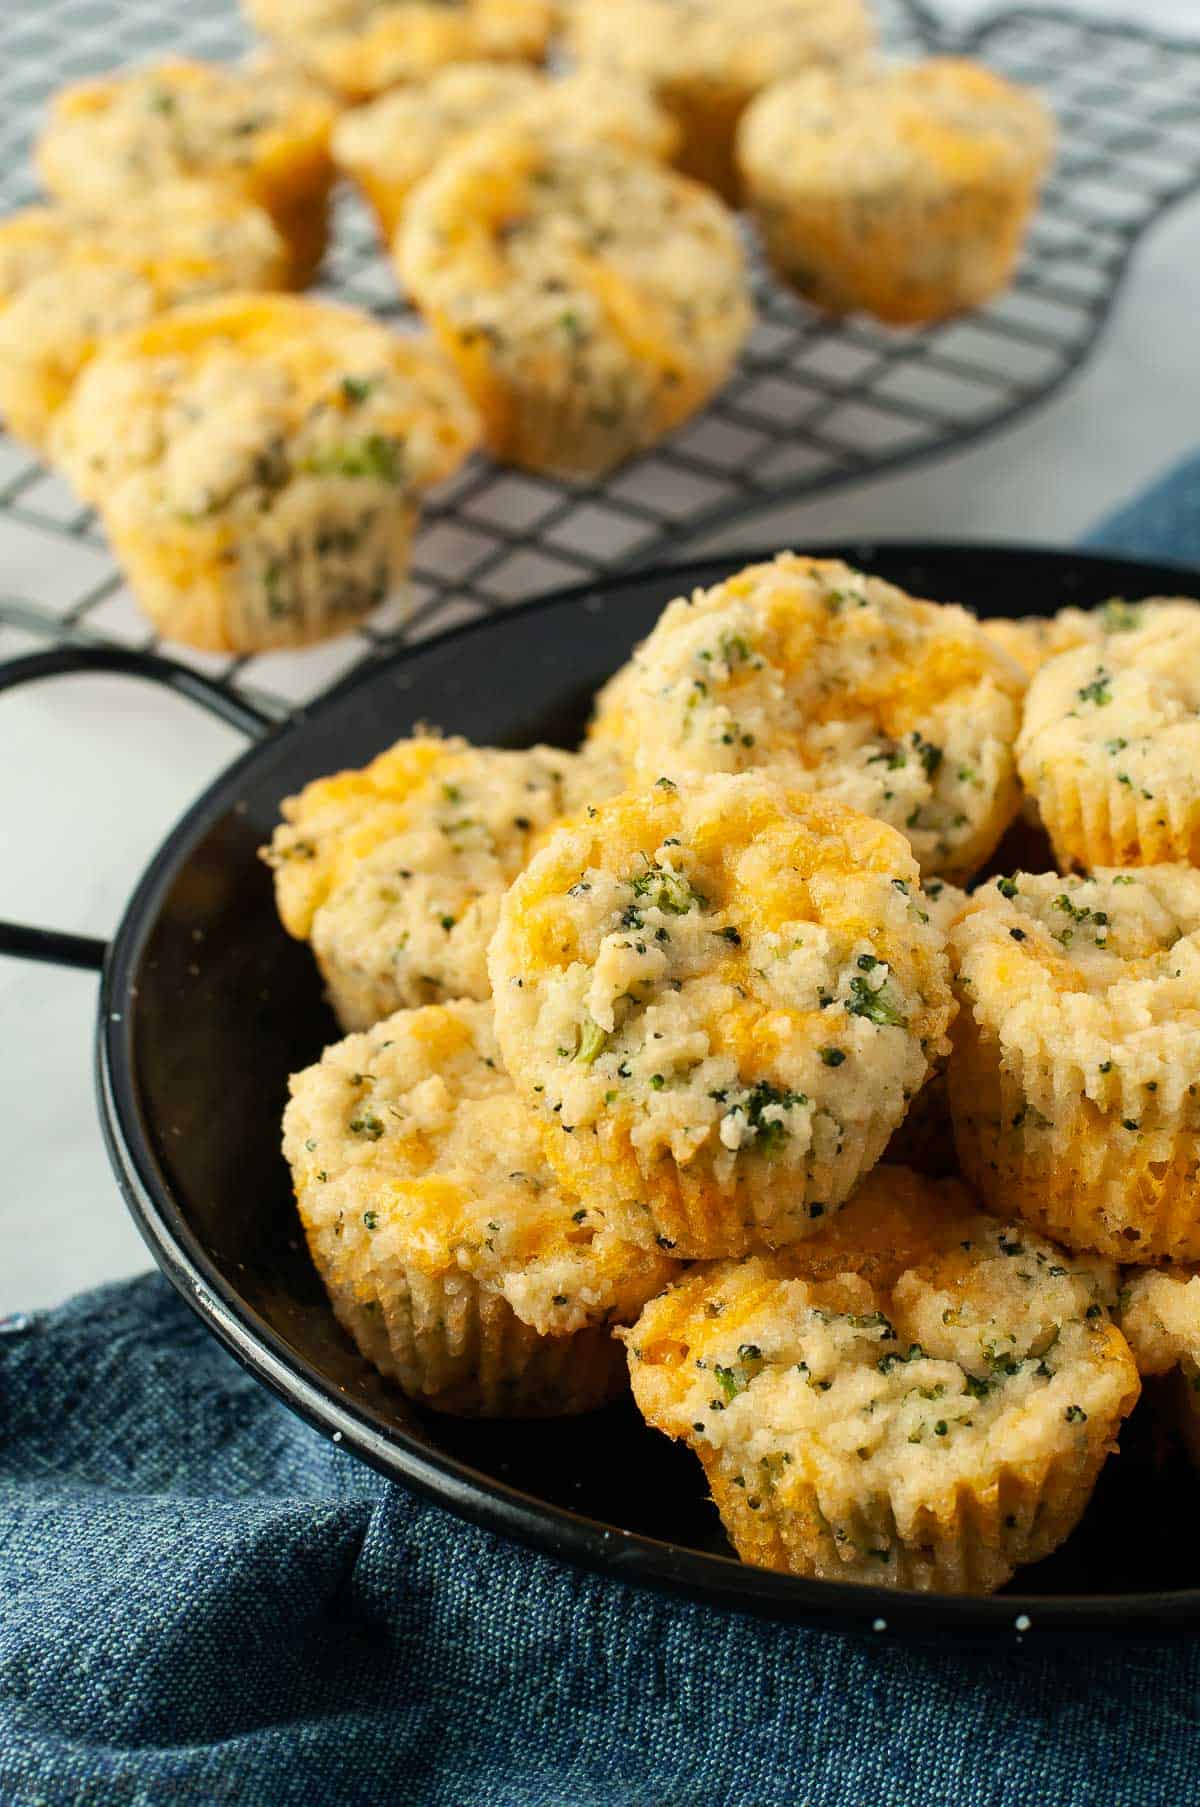 Overhead view of a bowl of broccoli cheddar muffins